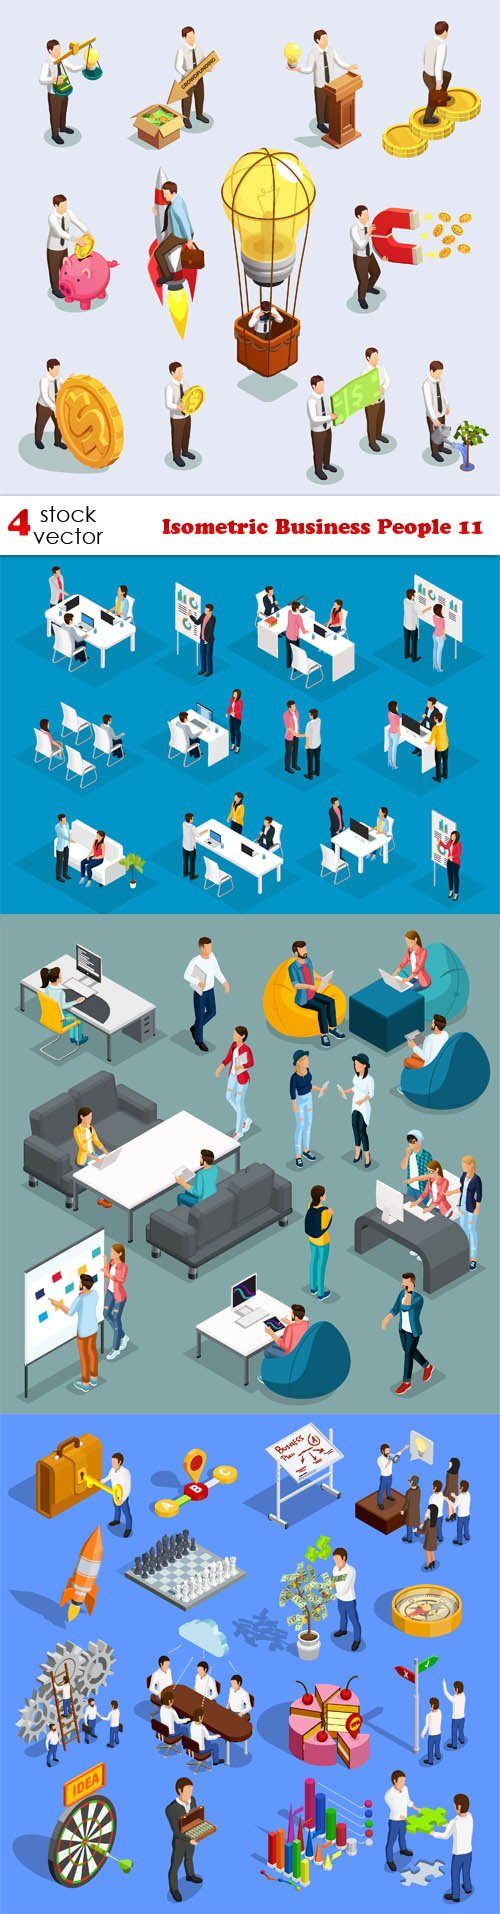 Vectors - Isometric Business People 11